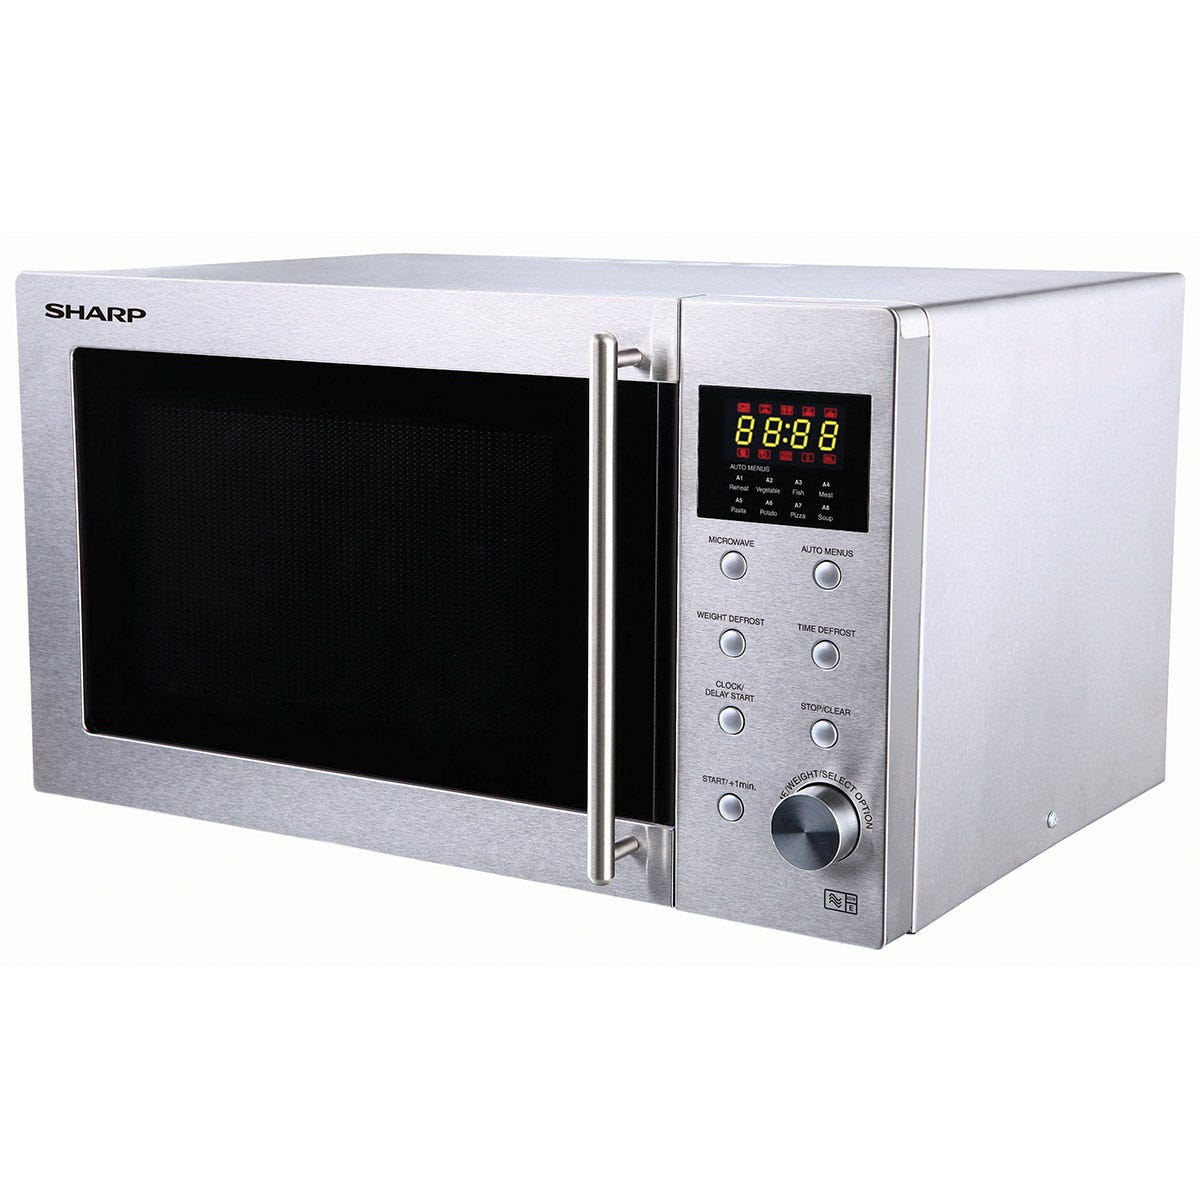 Sharp R28STM Solo 23L 800W Microwave - Stainless Steel